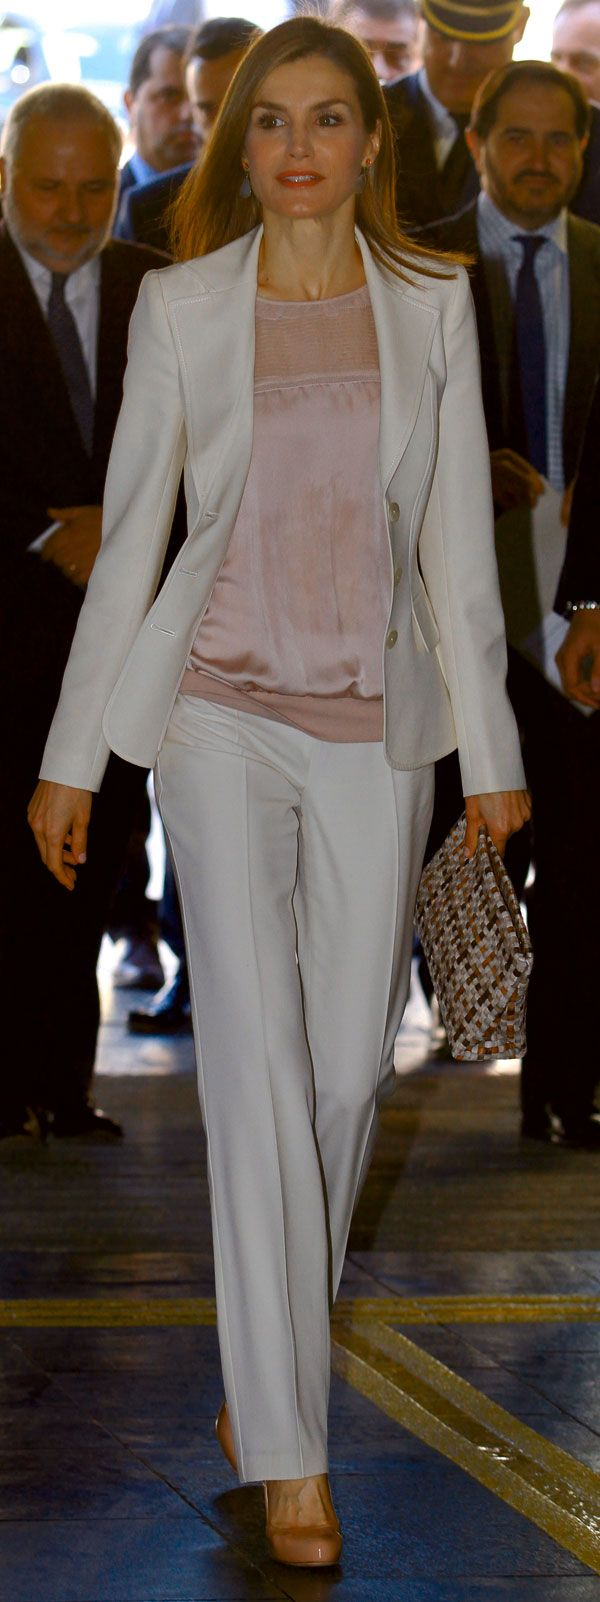 15 April 2015 - Queen Letizia attends the opening of a congress in Barcellona - suit by Felipe Varela